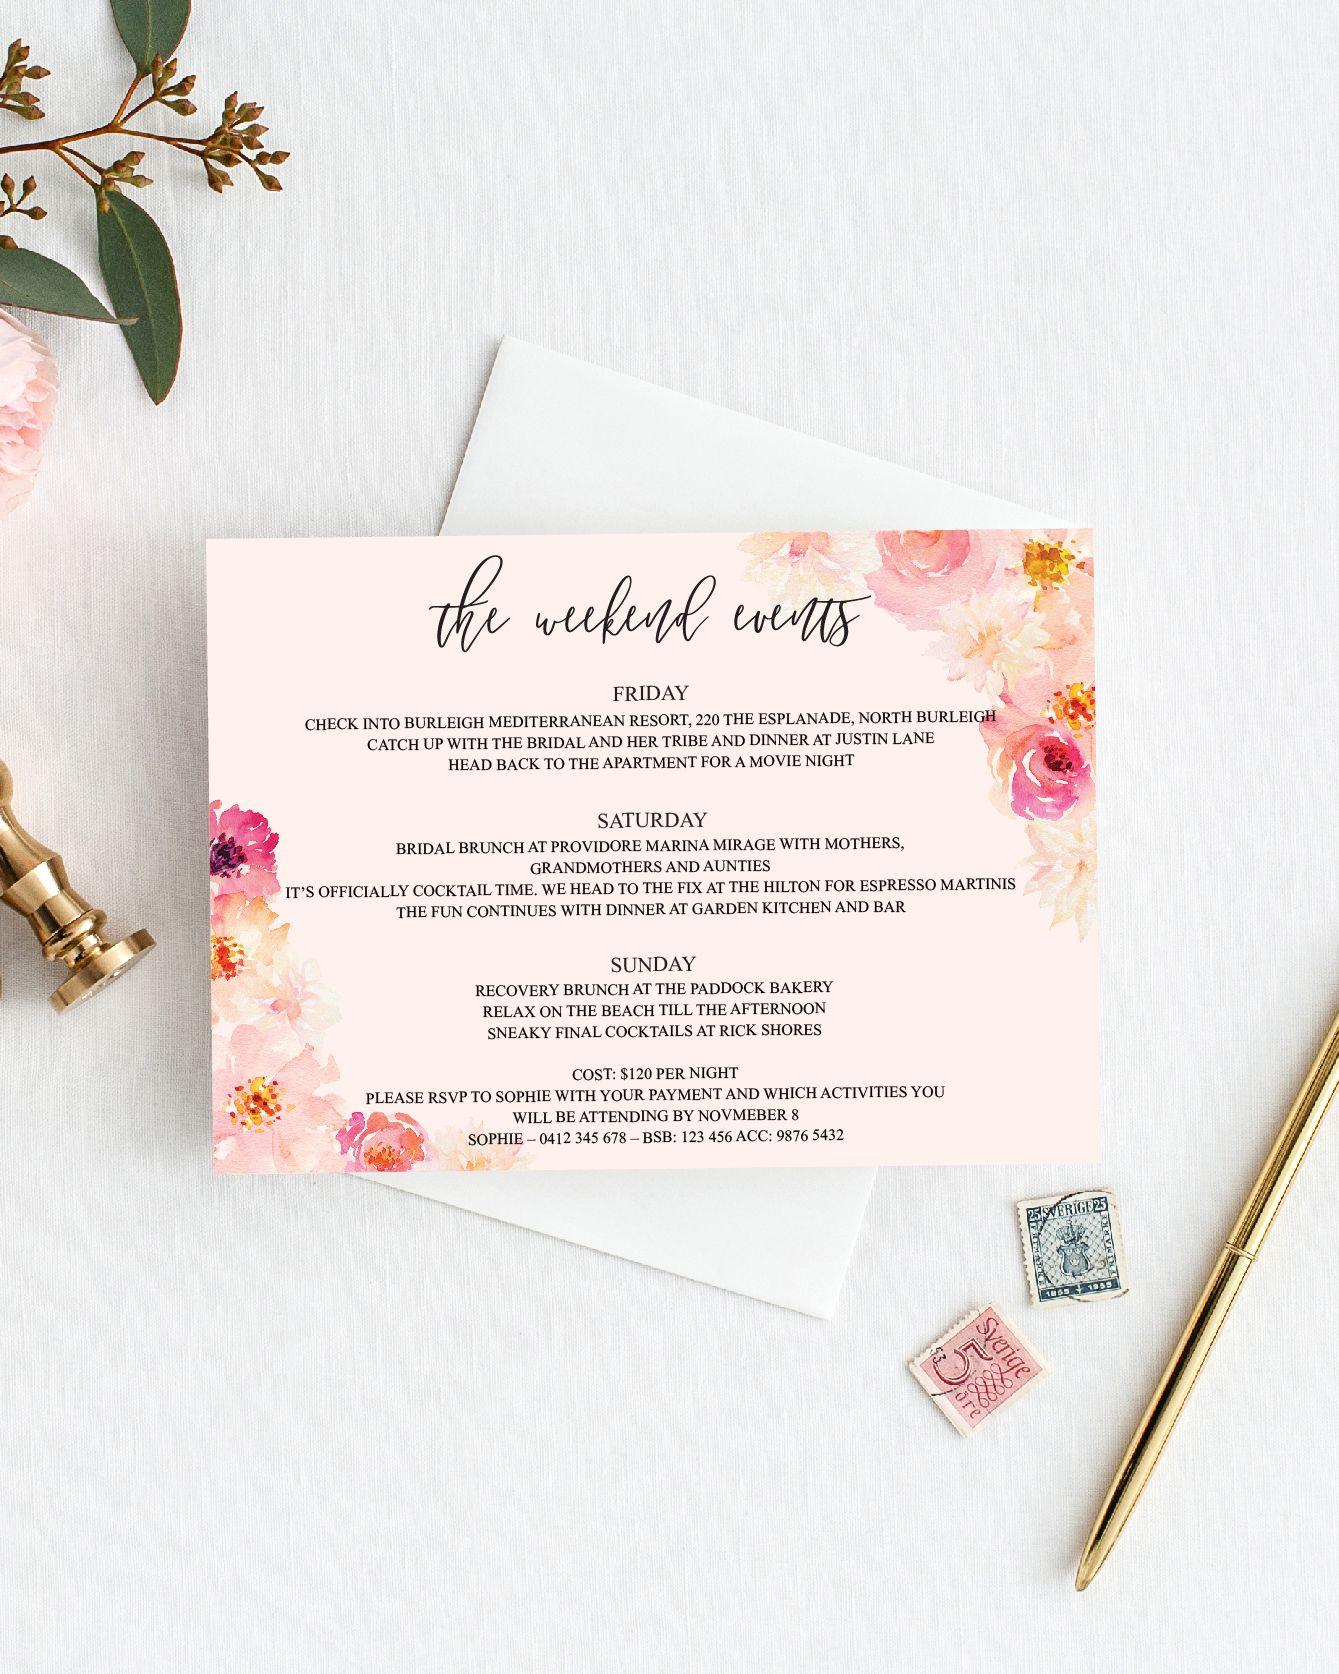 Printable Bachelorette Itinerary Template Weekend Itinerary Etsy Wedding Itinerary Template Bachelorette Party Itinerary Bachelorette Party Itinerary Template